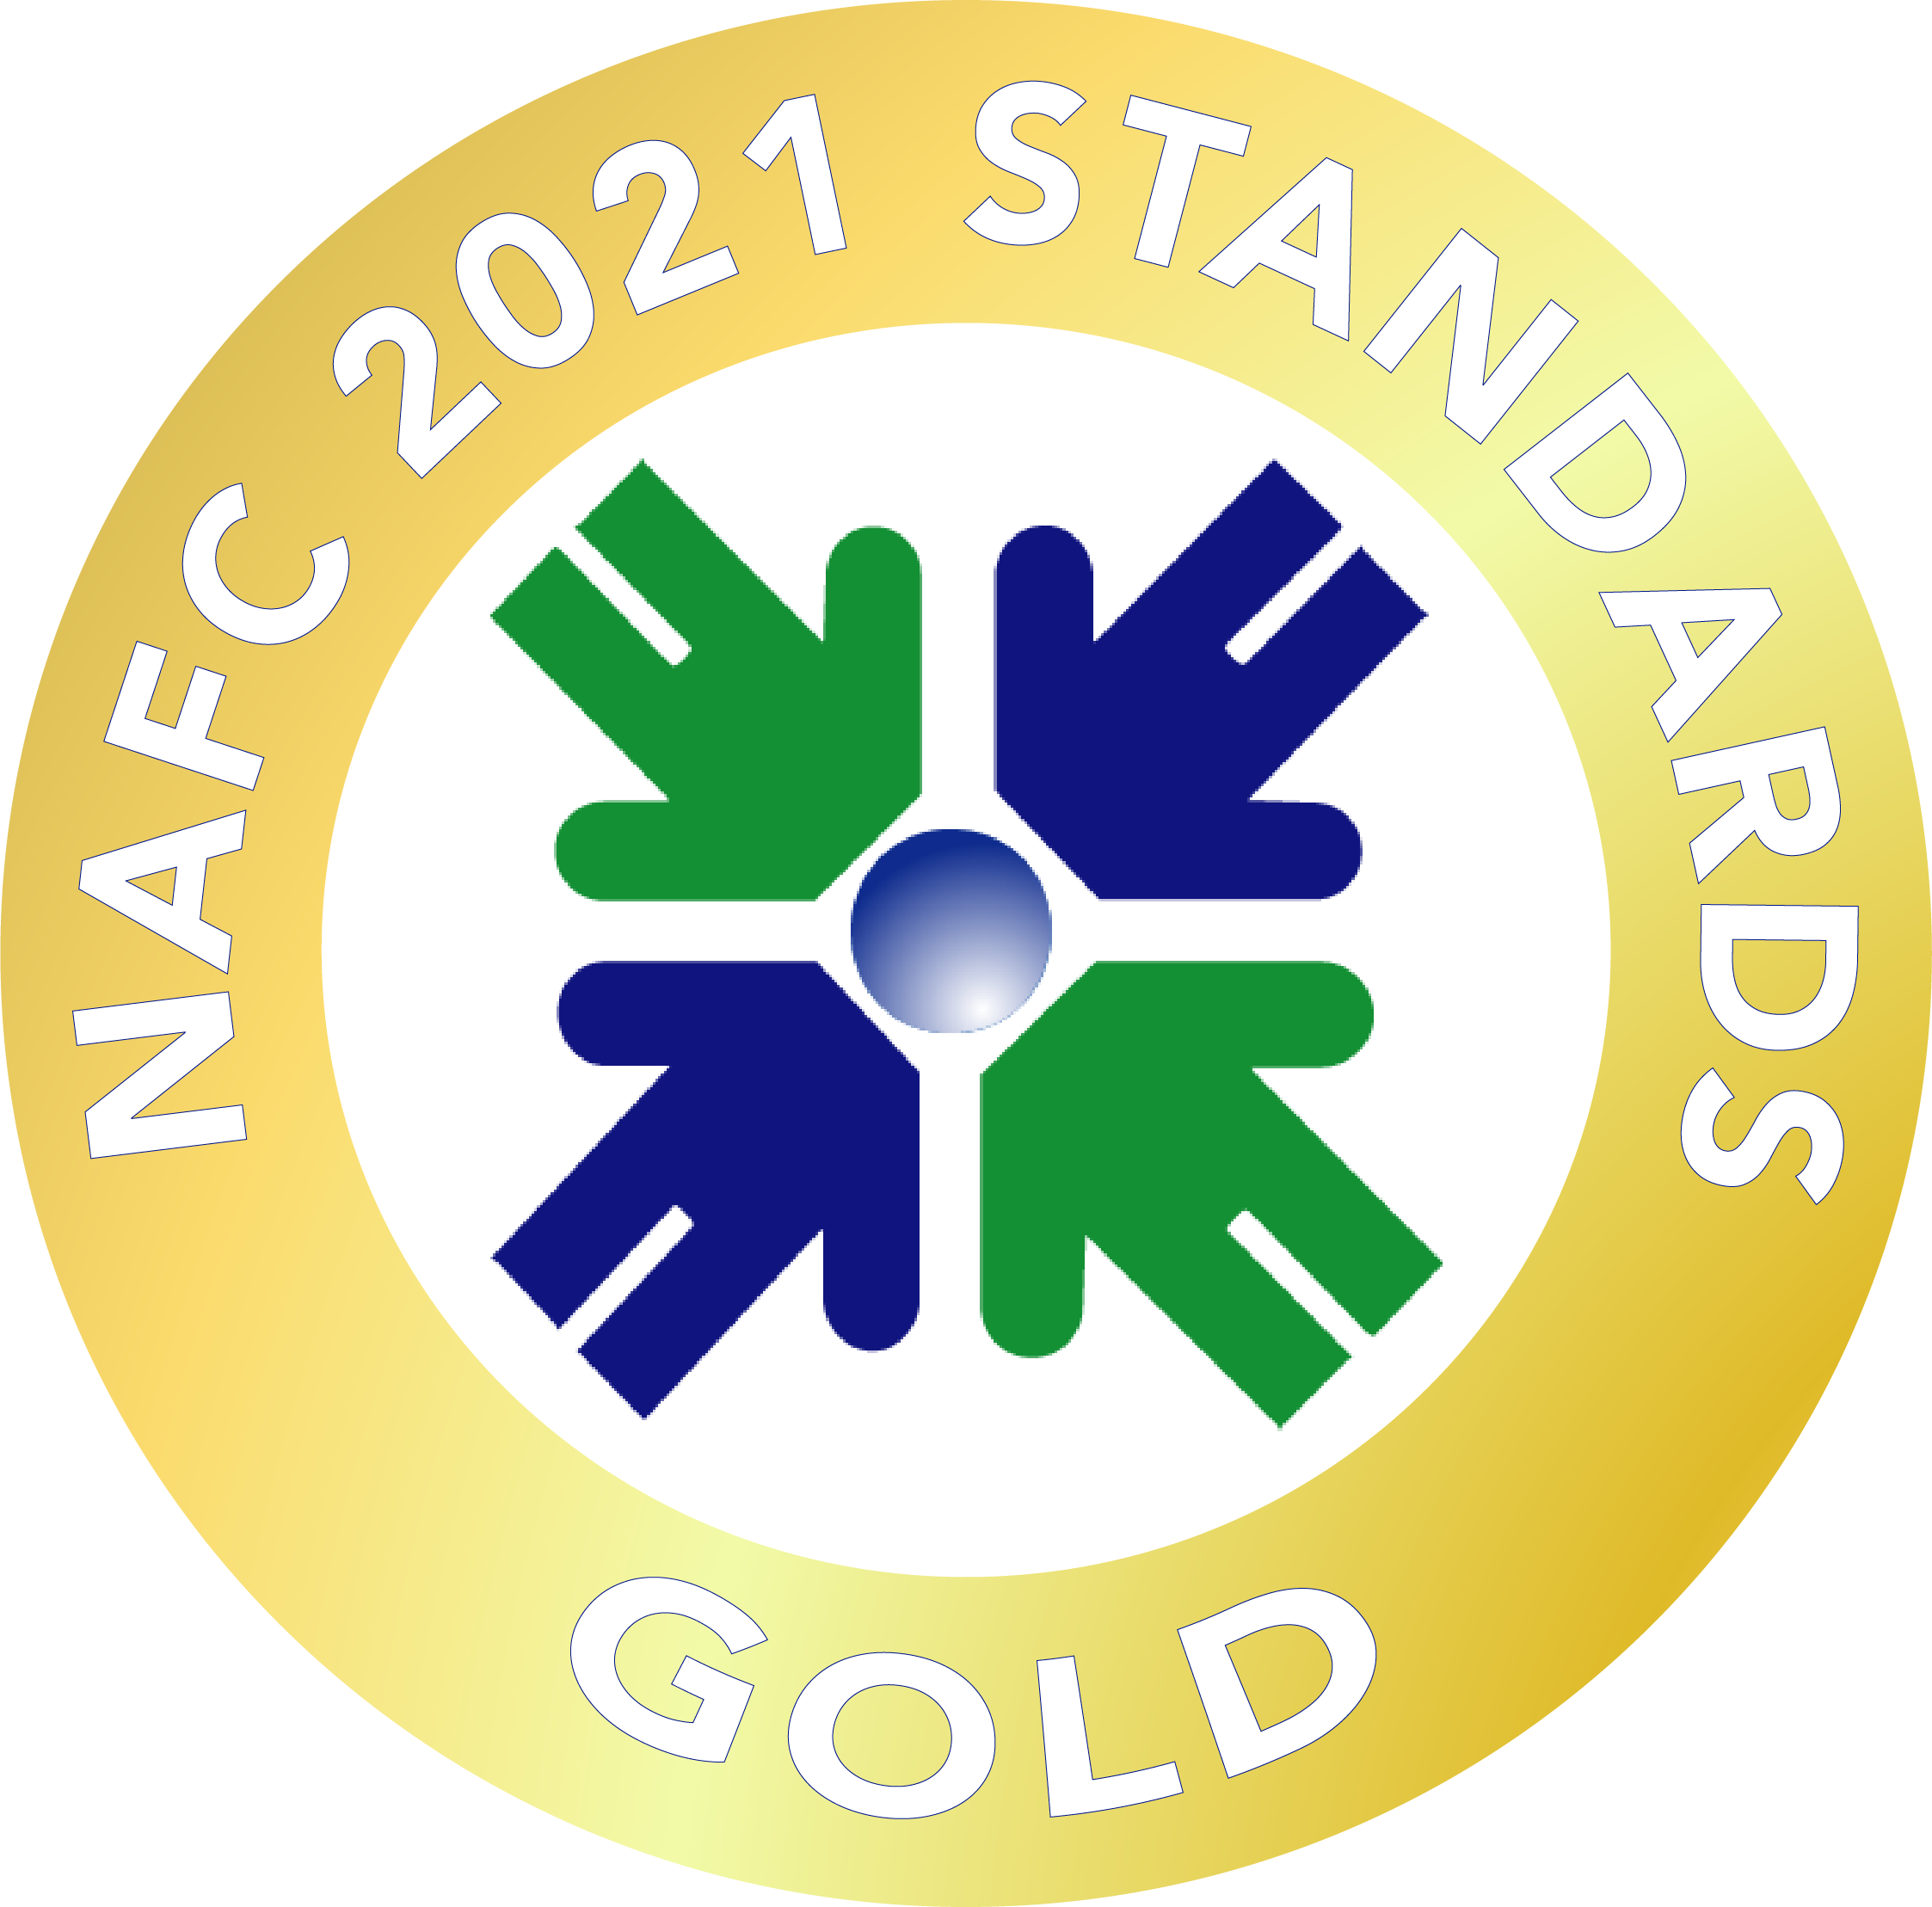 Interfaith Clinic Earned a 2021 Gold Rating from the NAFC